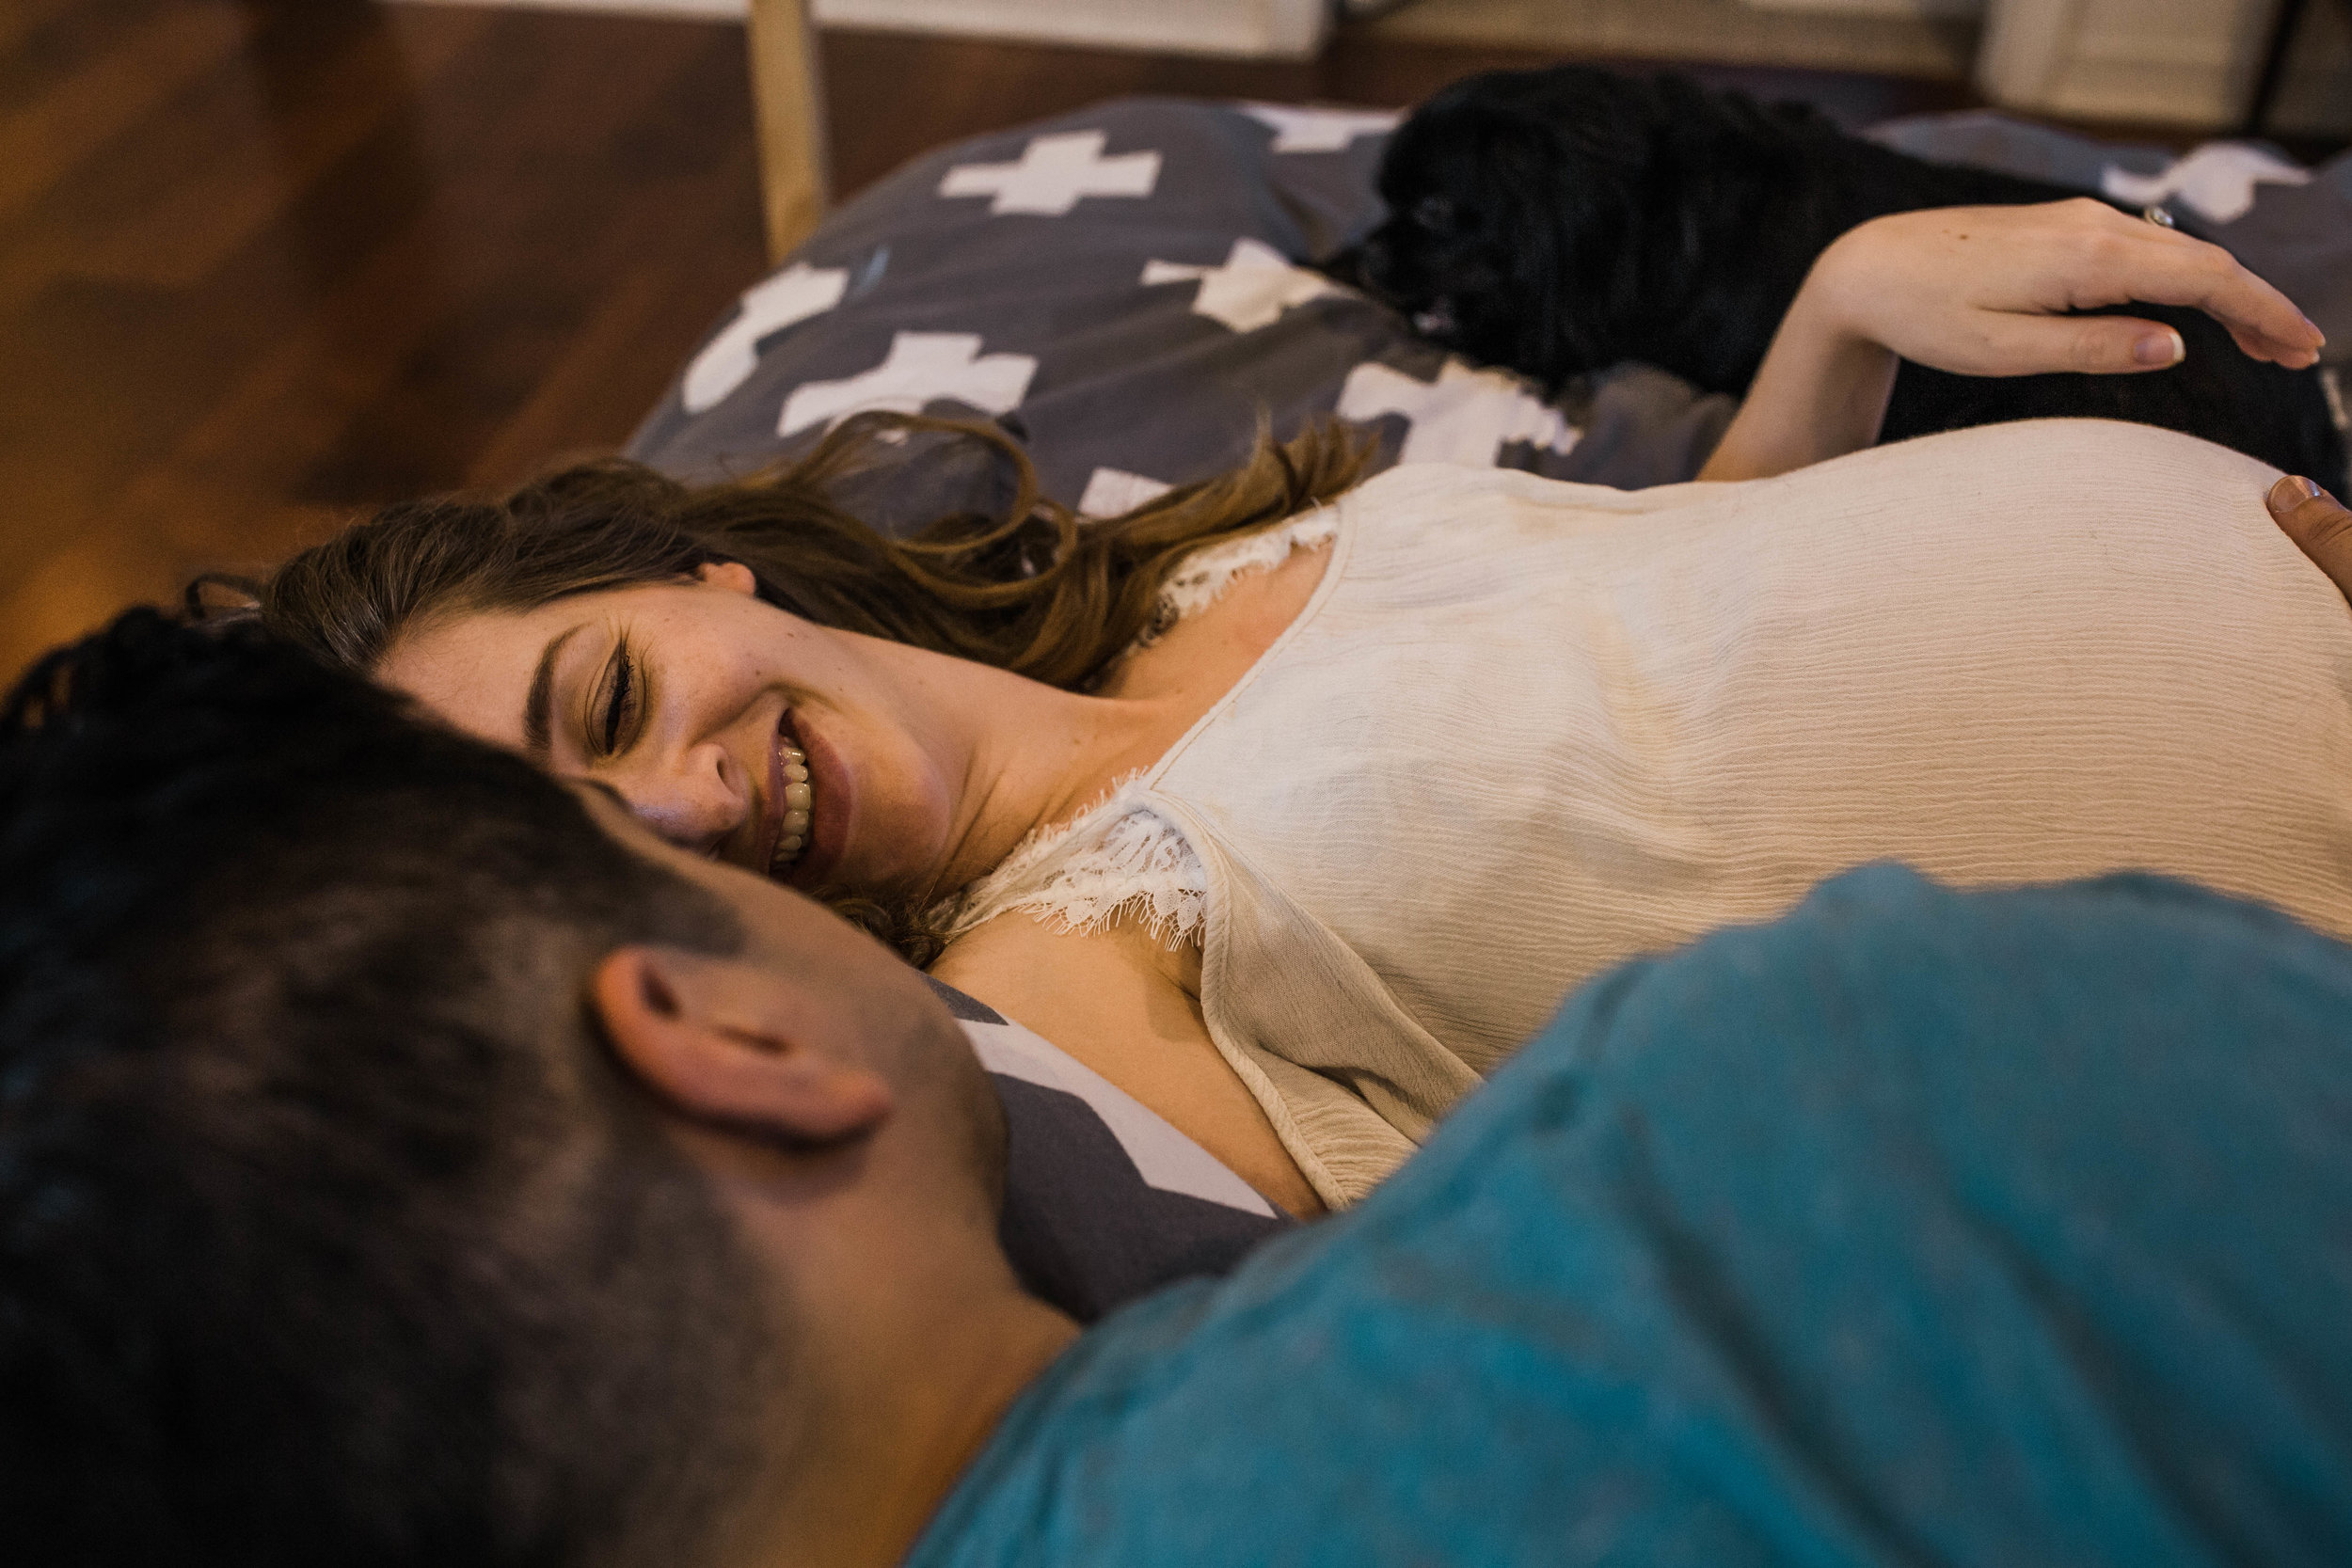 life-style-in-home-maternity-session-adventure-elopement-wedding-photographer-national-park-wedding-photographer-yosemite-elopement-photographer-colorado-adventure-elopement-photographer